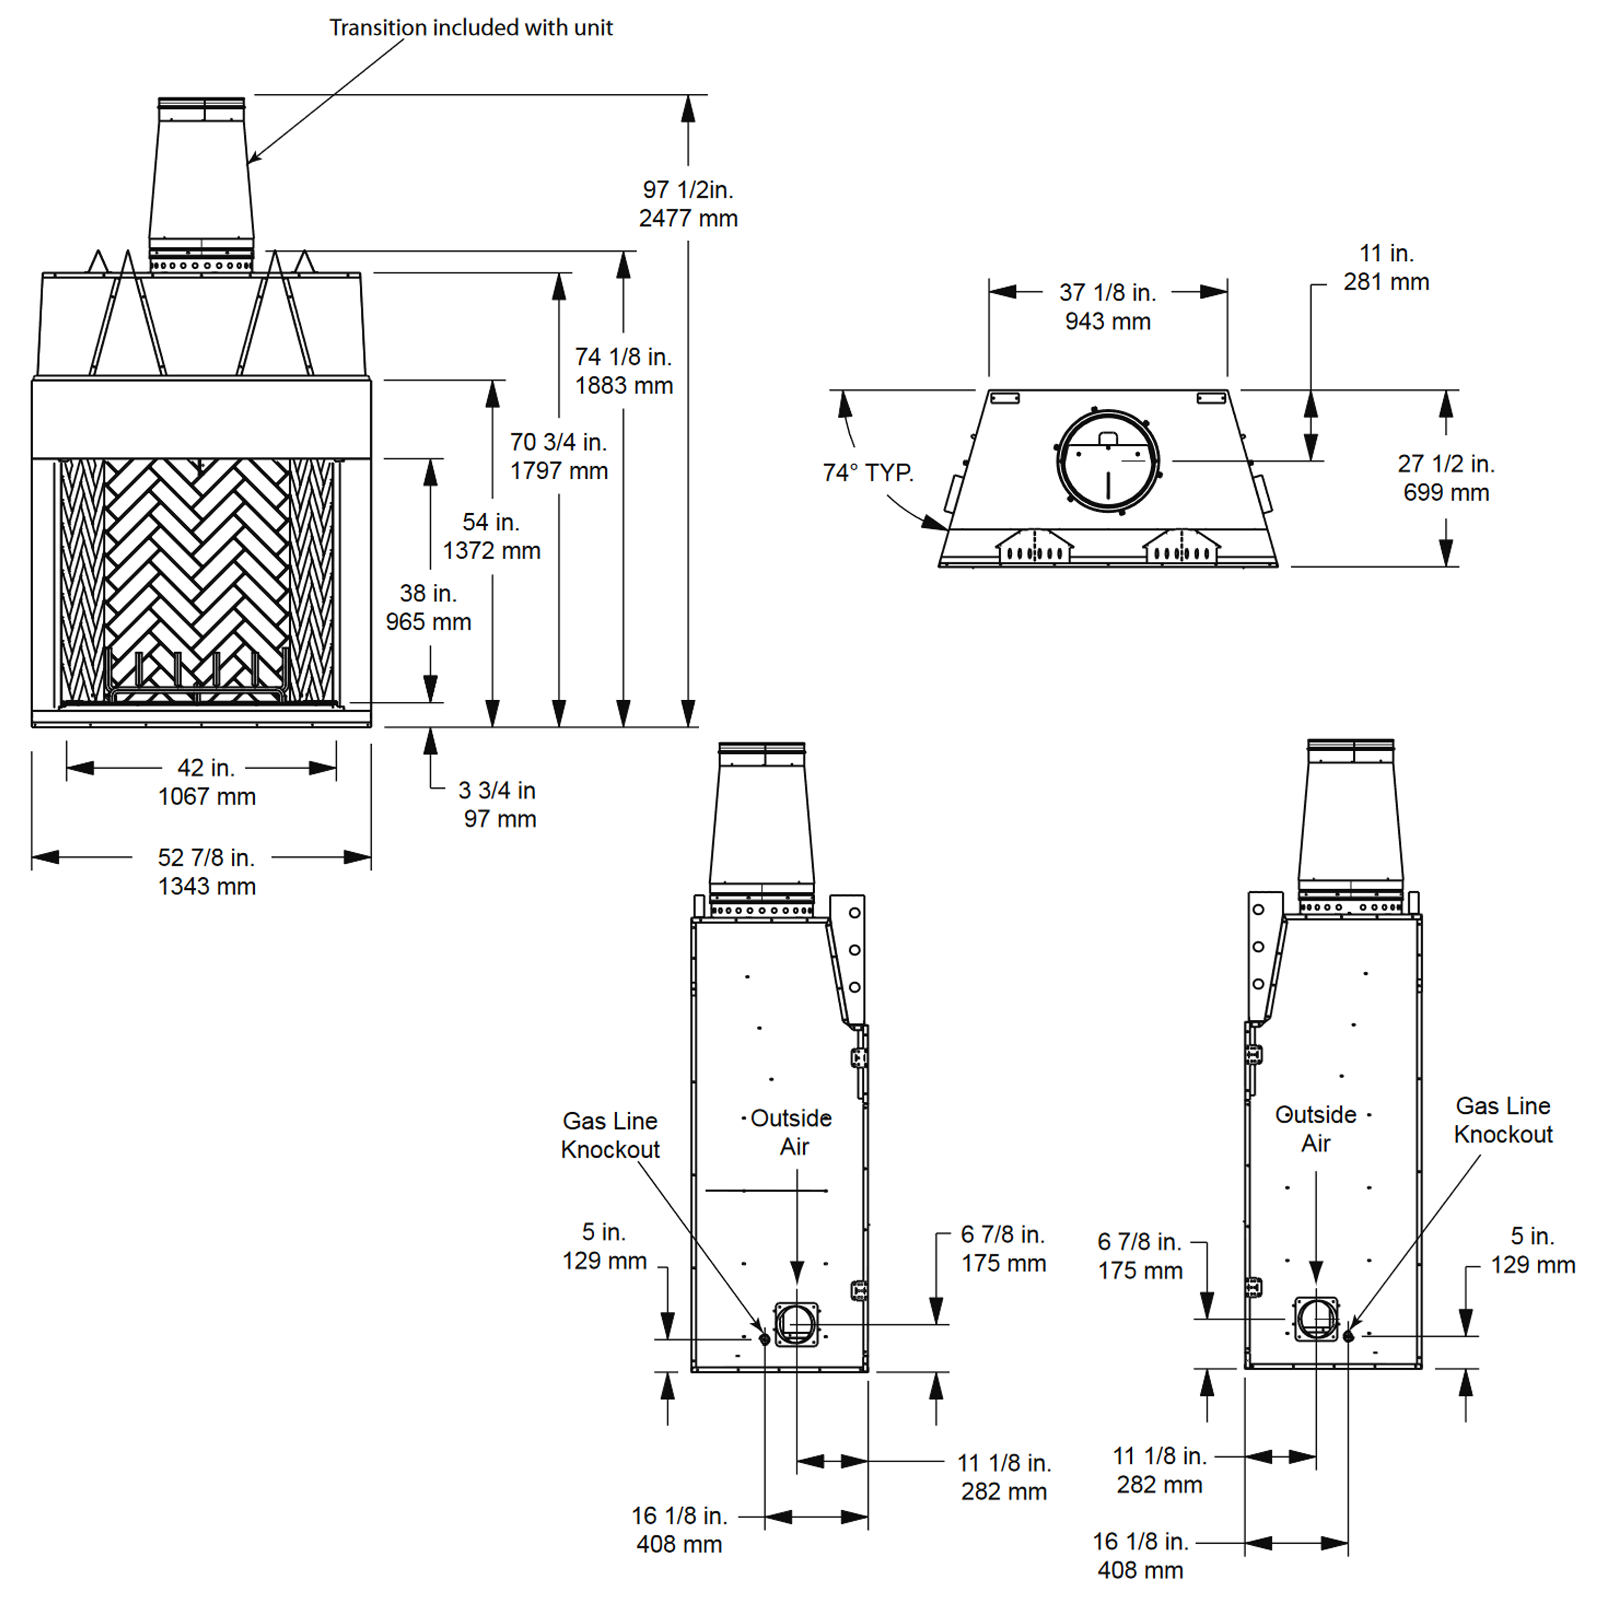 ASH42 Technical Drawing 1